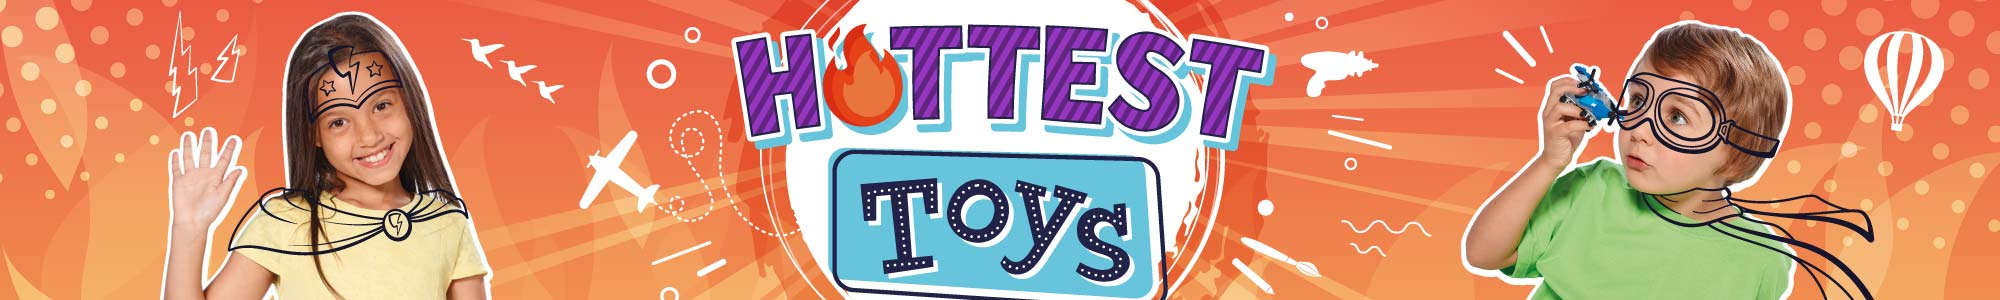 Hottest-toys-Brand-pg-2000x300px.jpg